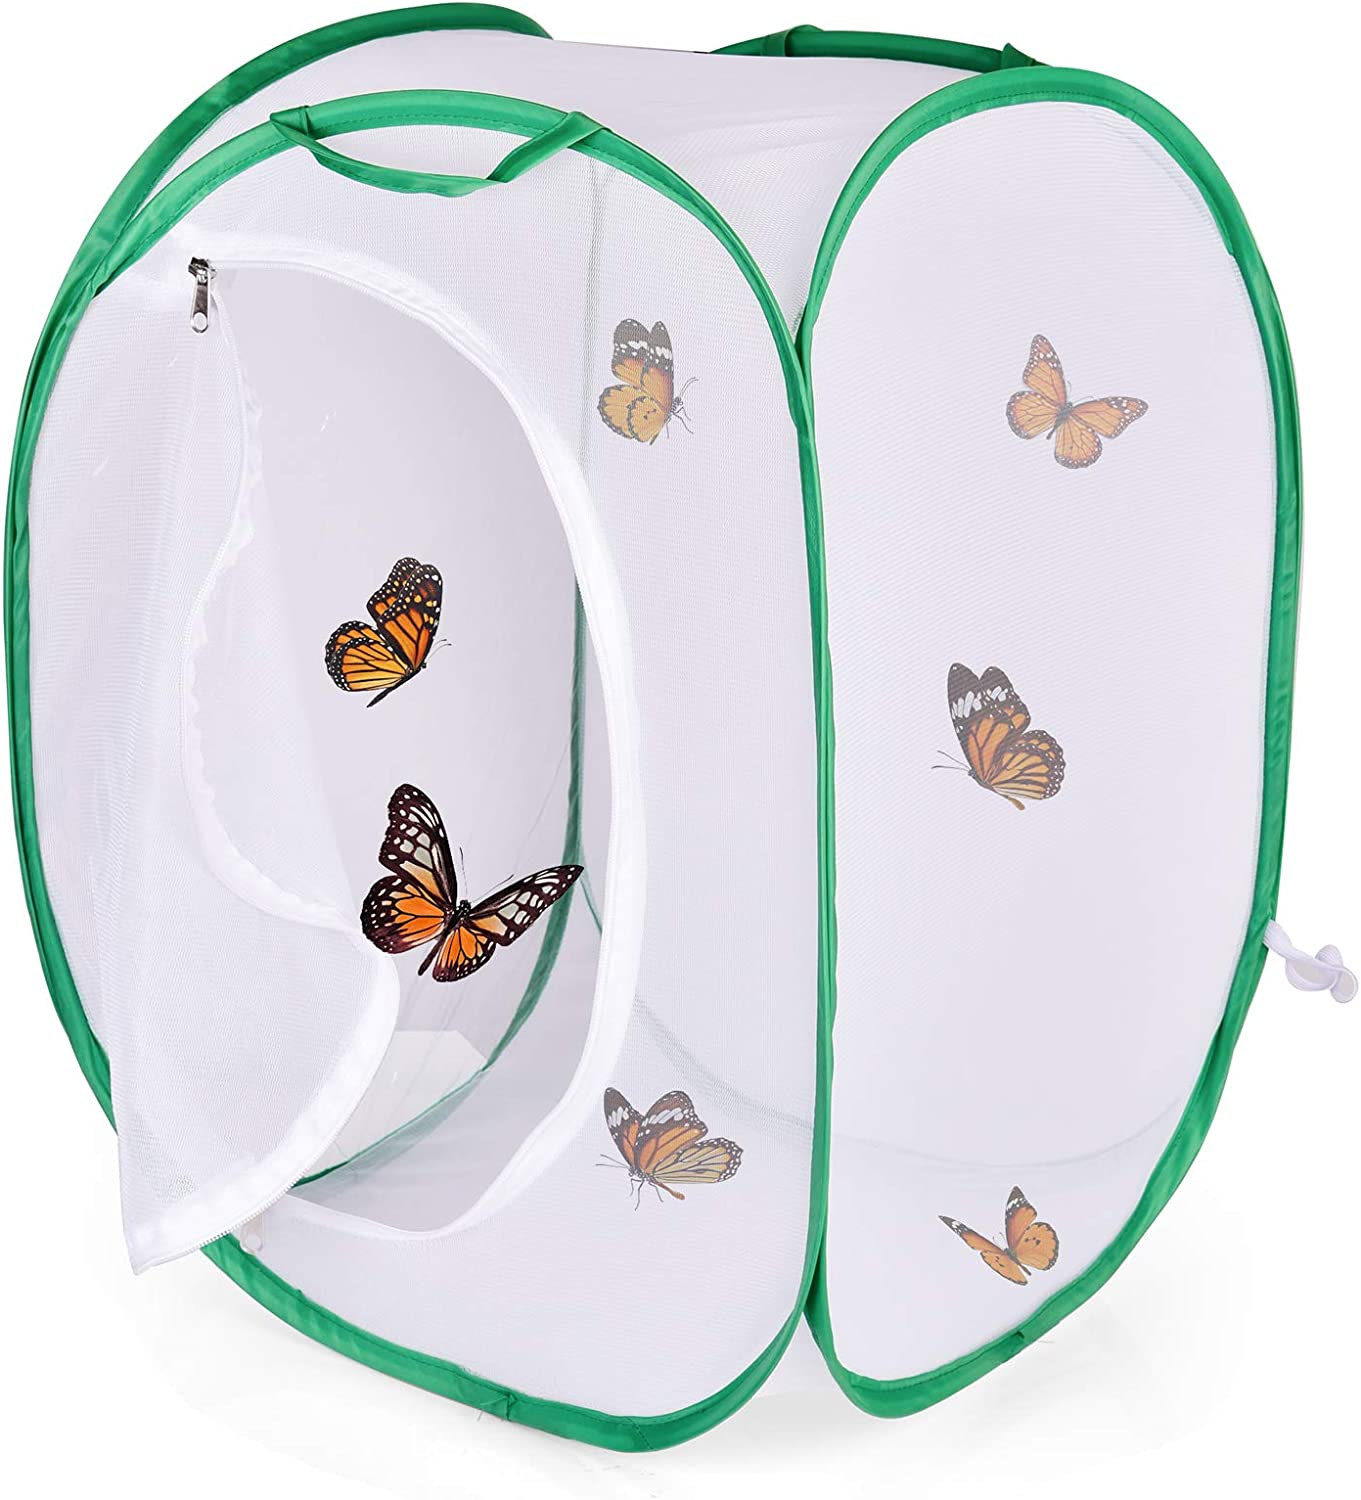 FUN LITTLE TOYS Square Butterfly Cage Set, Insect and Butterfly Habitat Cage, Collapsible Caterpillar Habitat, 23 in Tall Without Living Butterfly